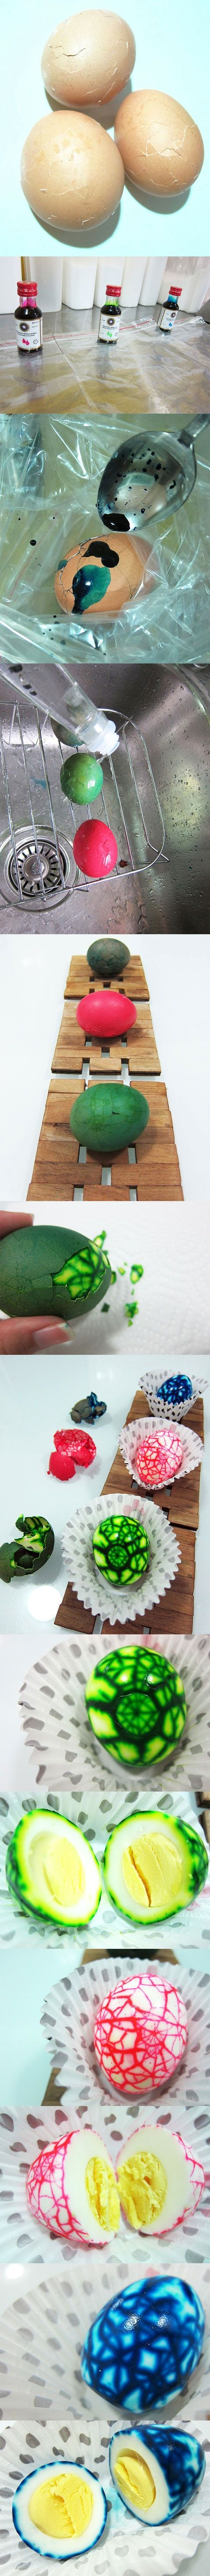 EASTER EGGS... Tie Dyed! I don't like the idea of the dye, but think this would work with dark soy for a nice effect or even saffron, beetroot juice etc.